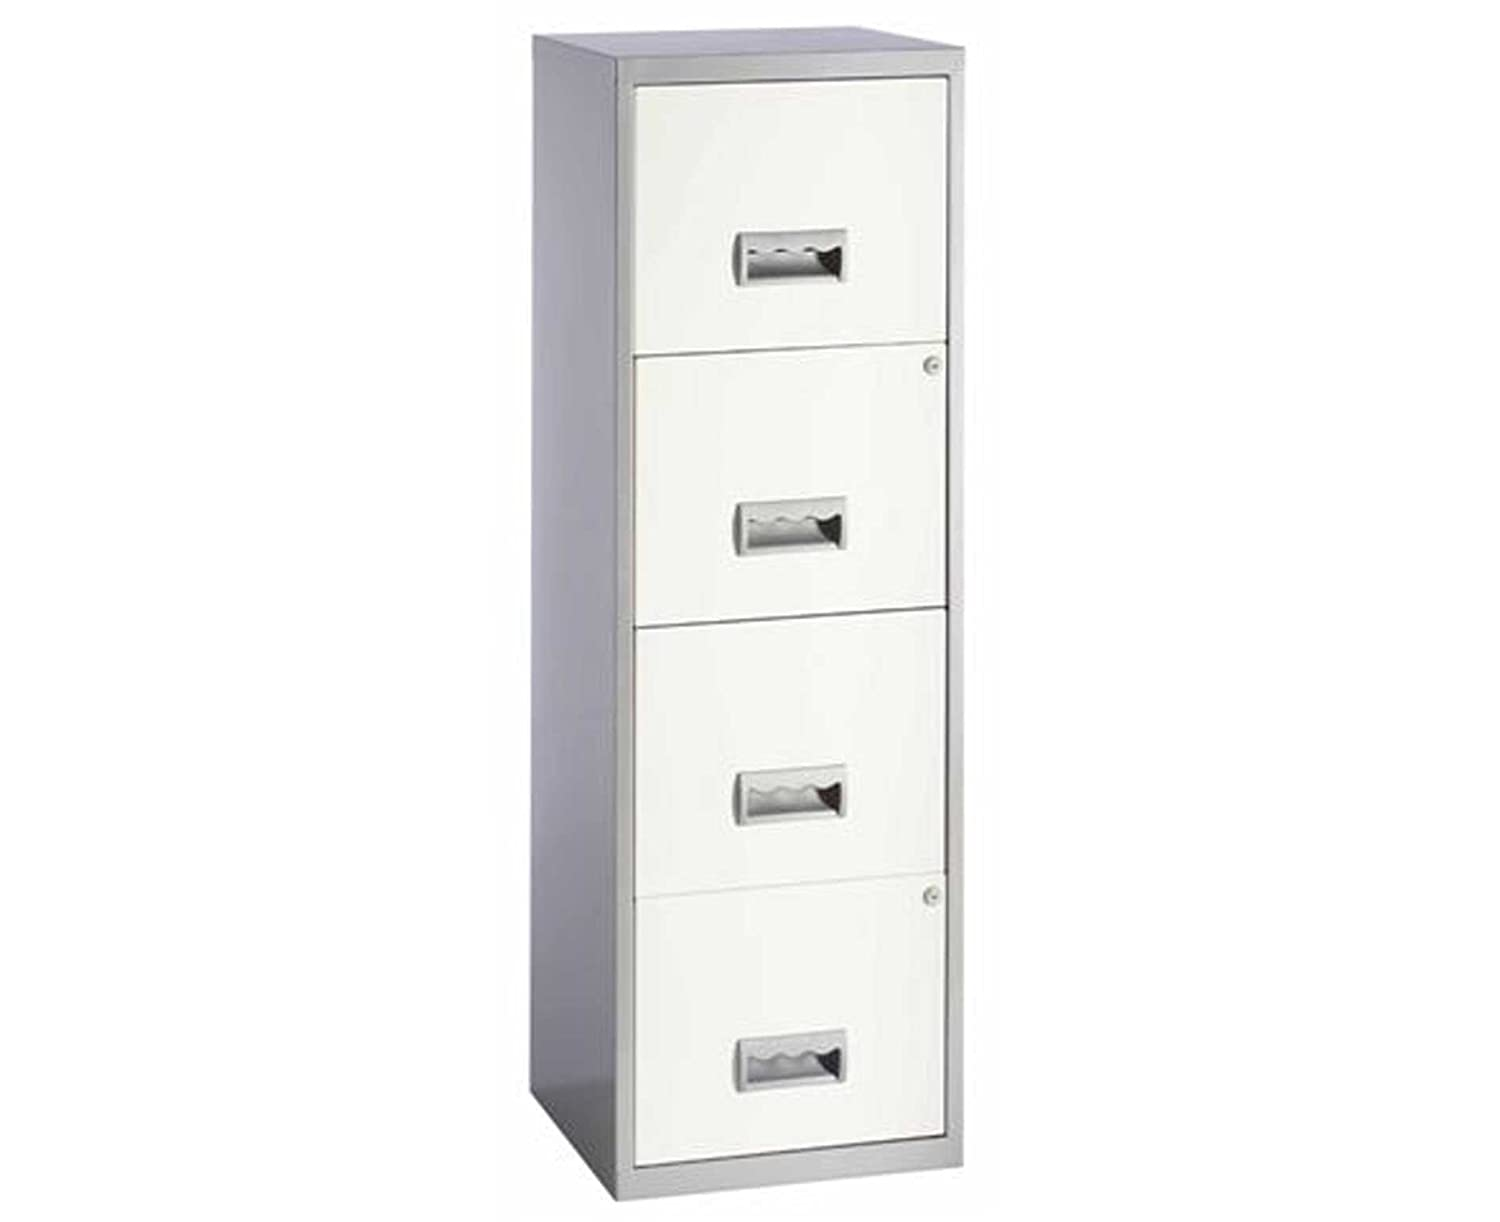 Pierre Henry A4 4 Drawer Maxi Filing Cabinet (Black)